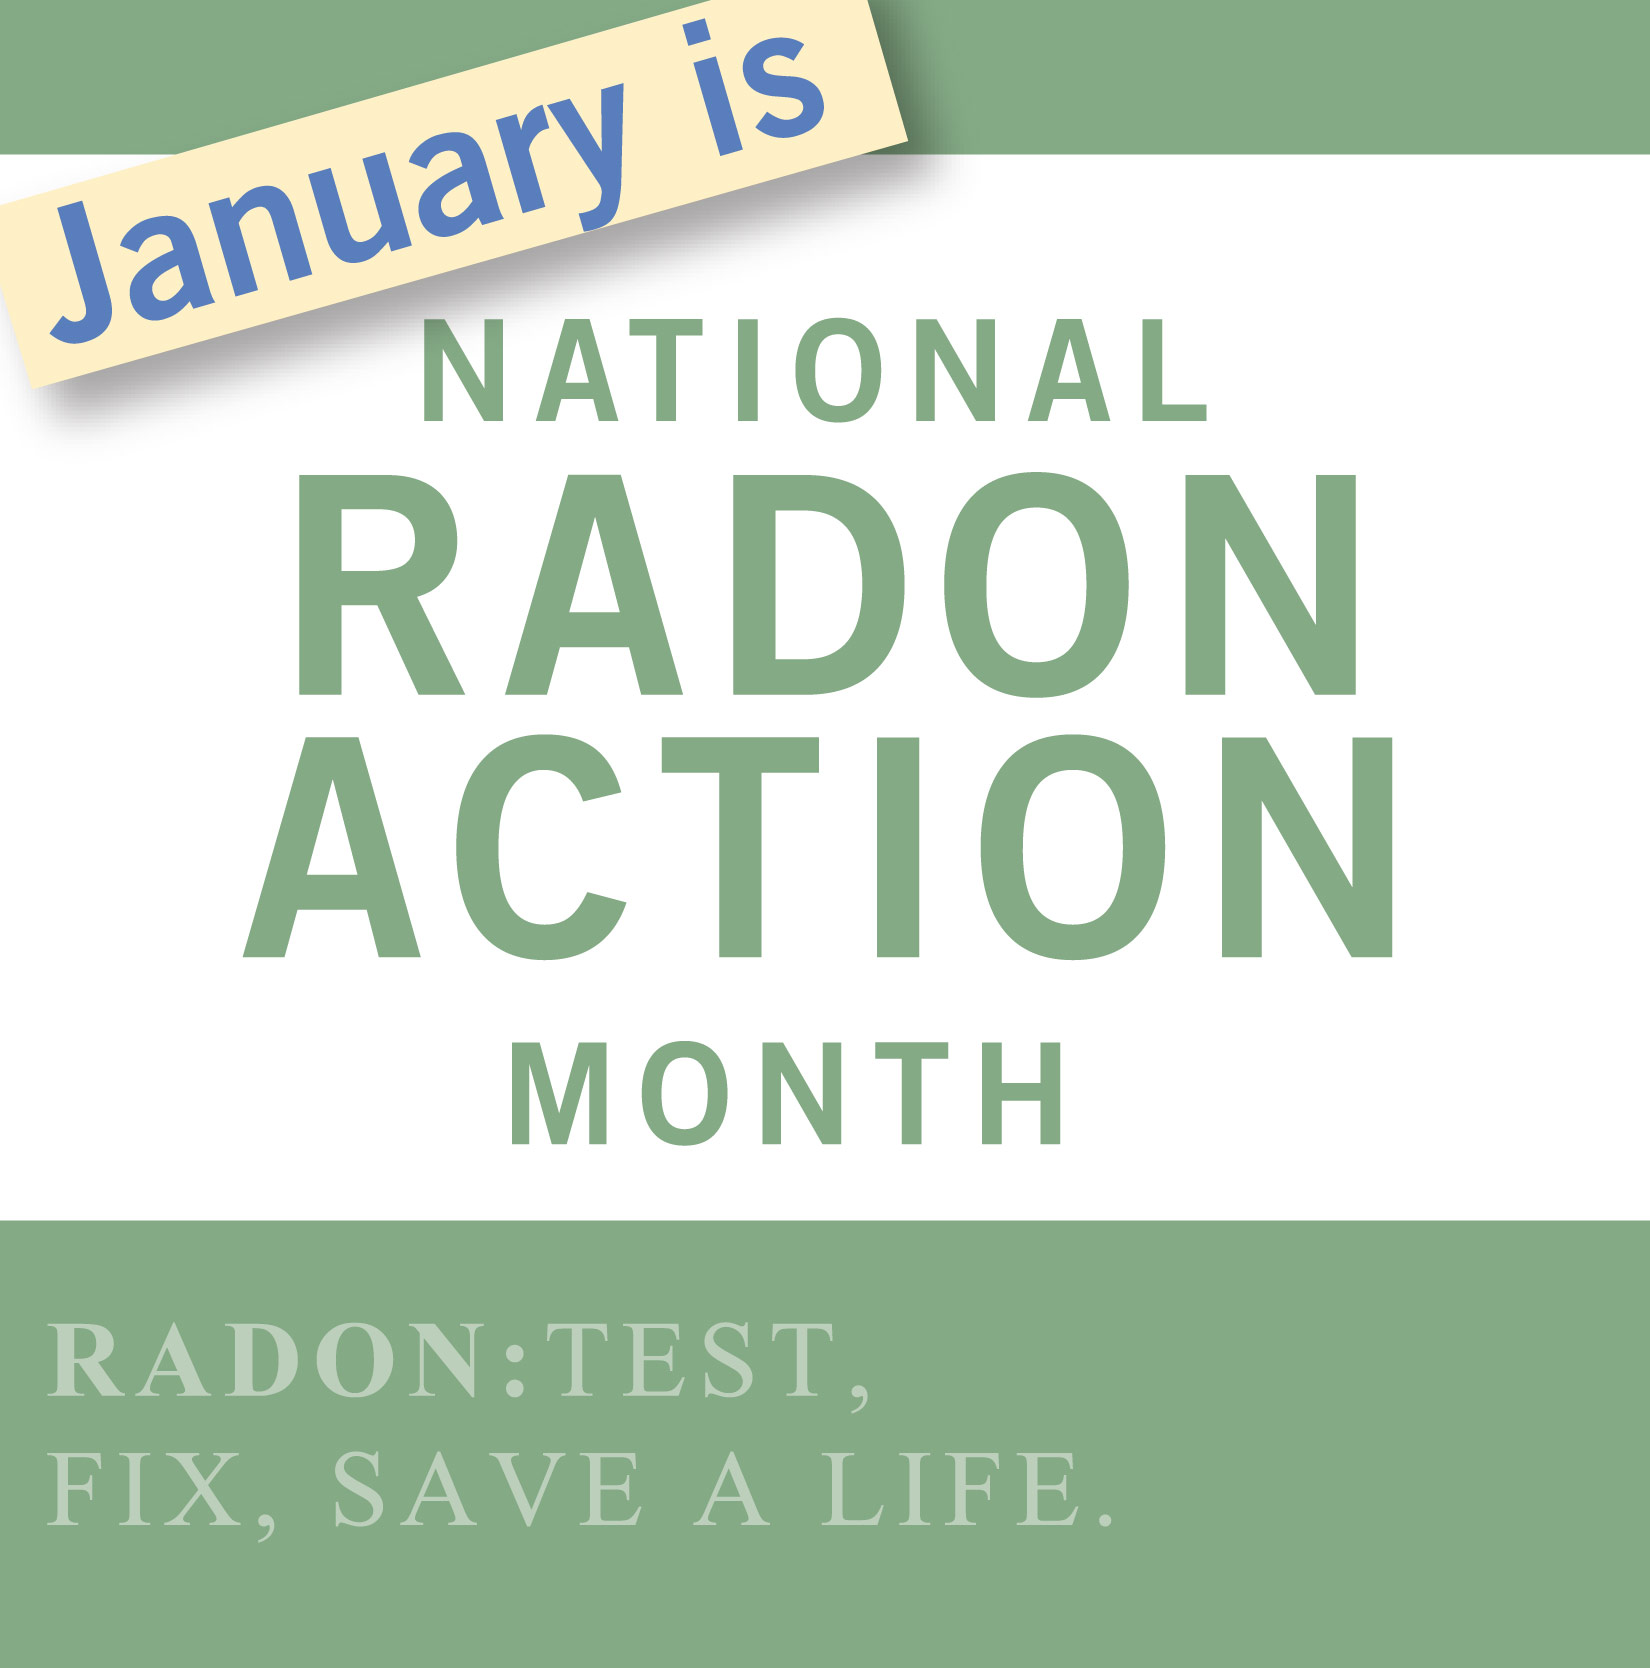 National Radon Action Month